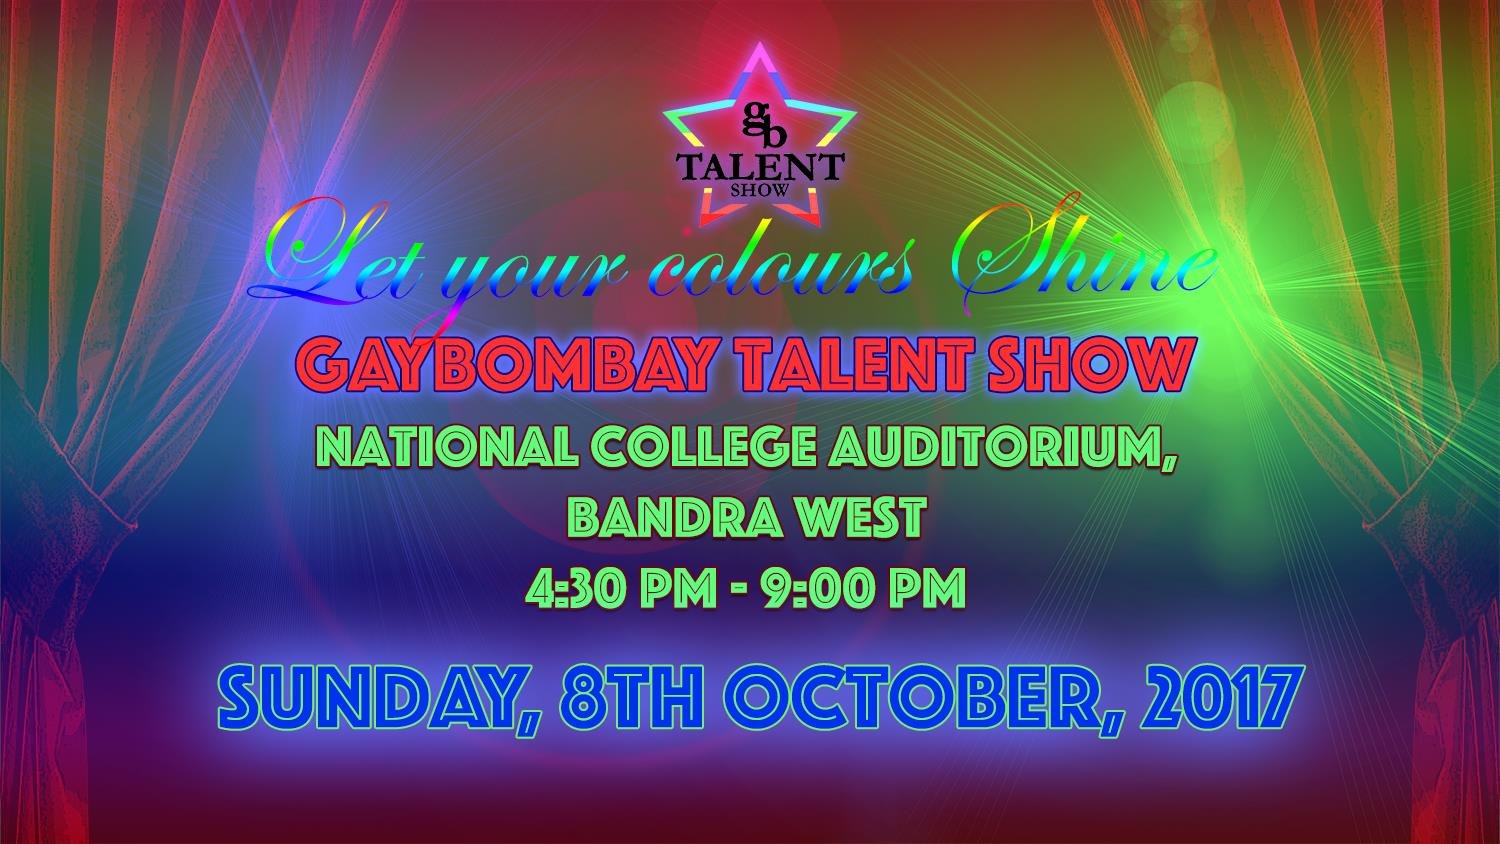 So You Think You Have Talent? Check Out The 2017 Gay Bombay Talent Show!